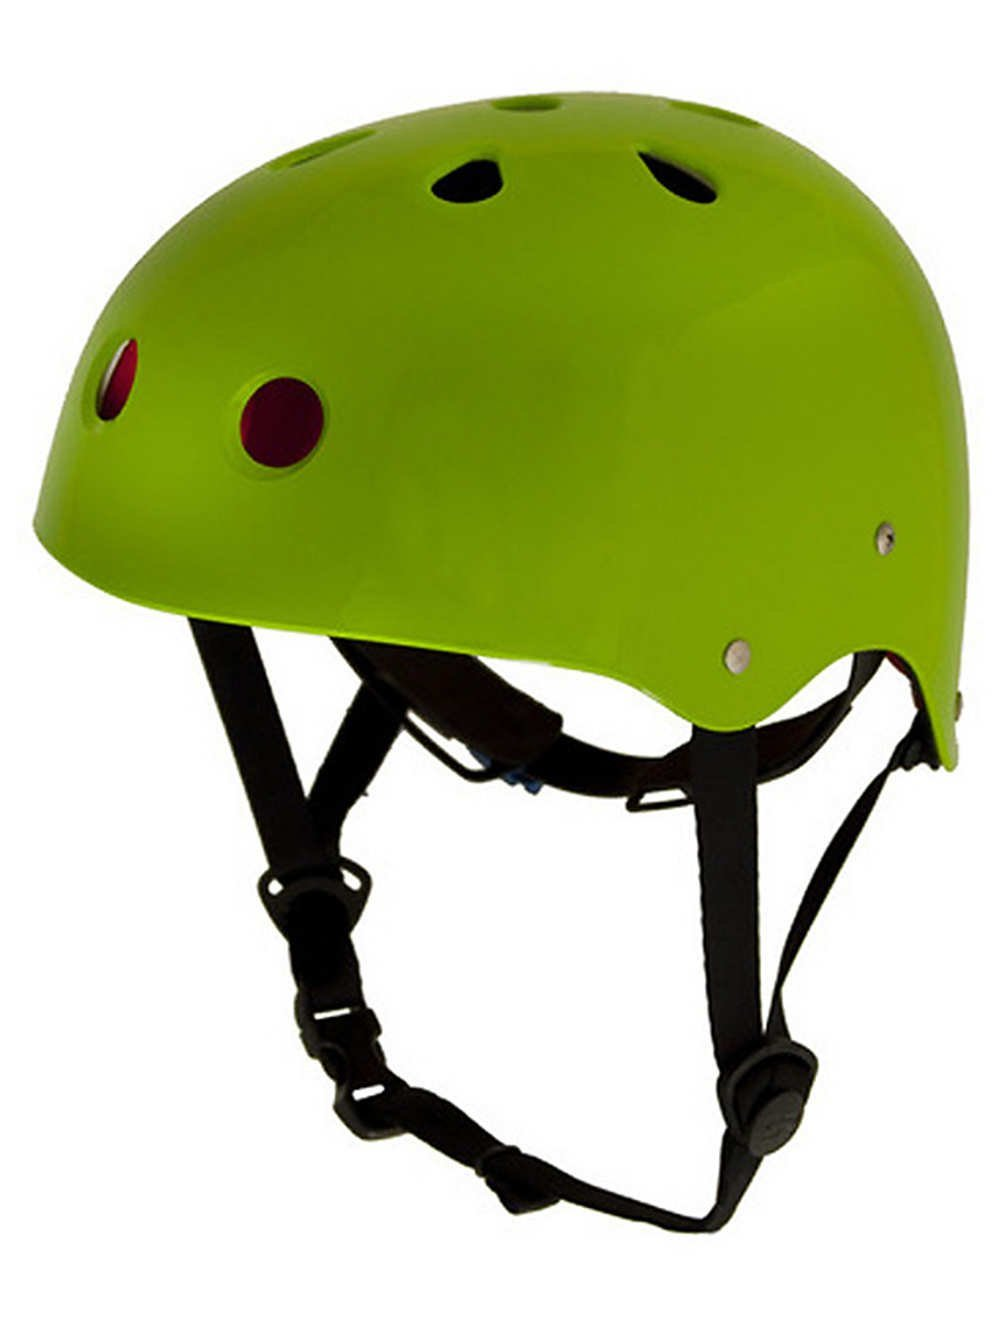 Green Shred Ready Bicycle Helmets